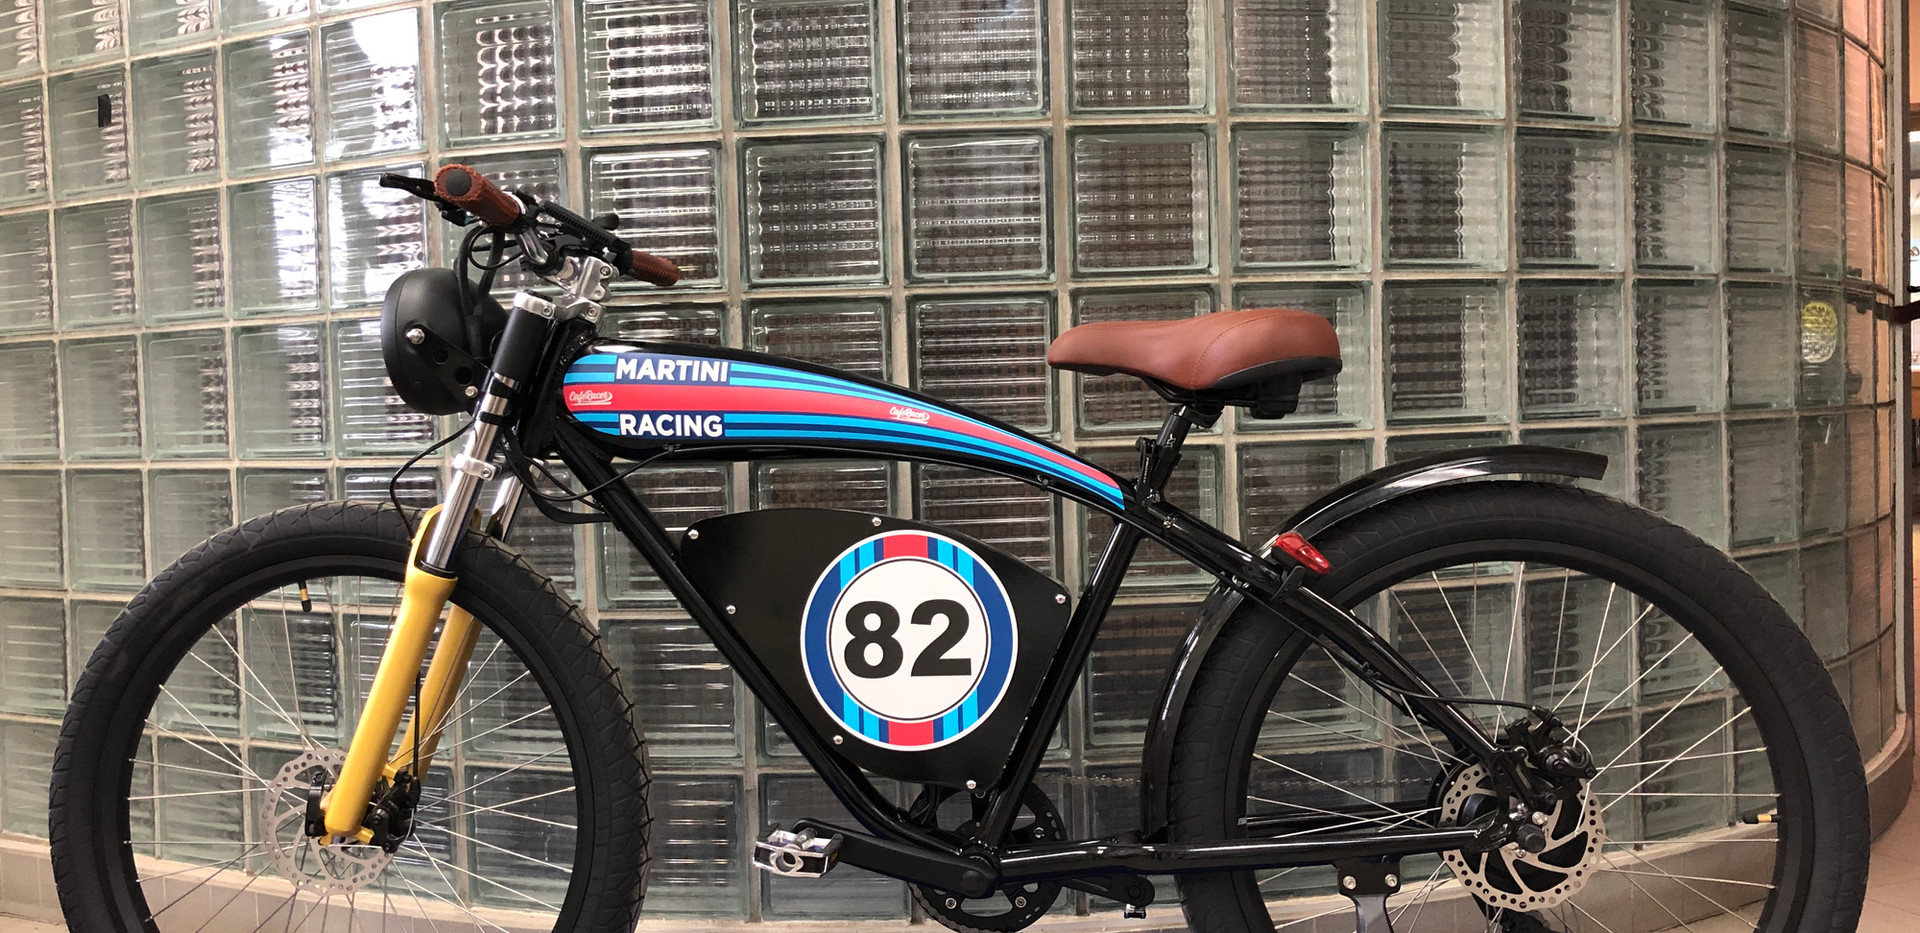 Cafe Racer '82 Martini Noir